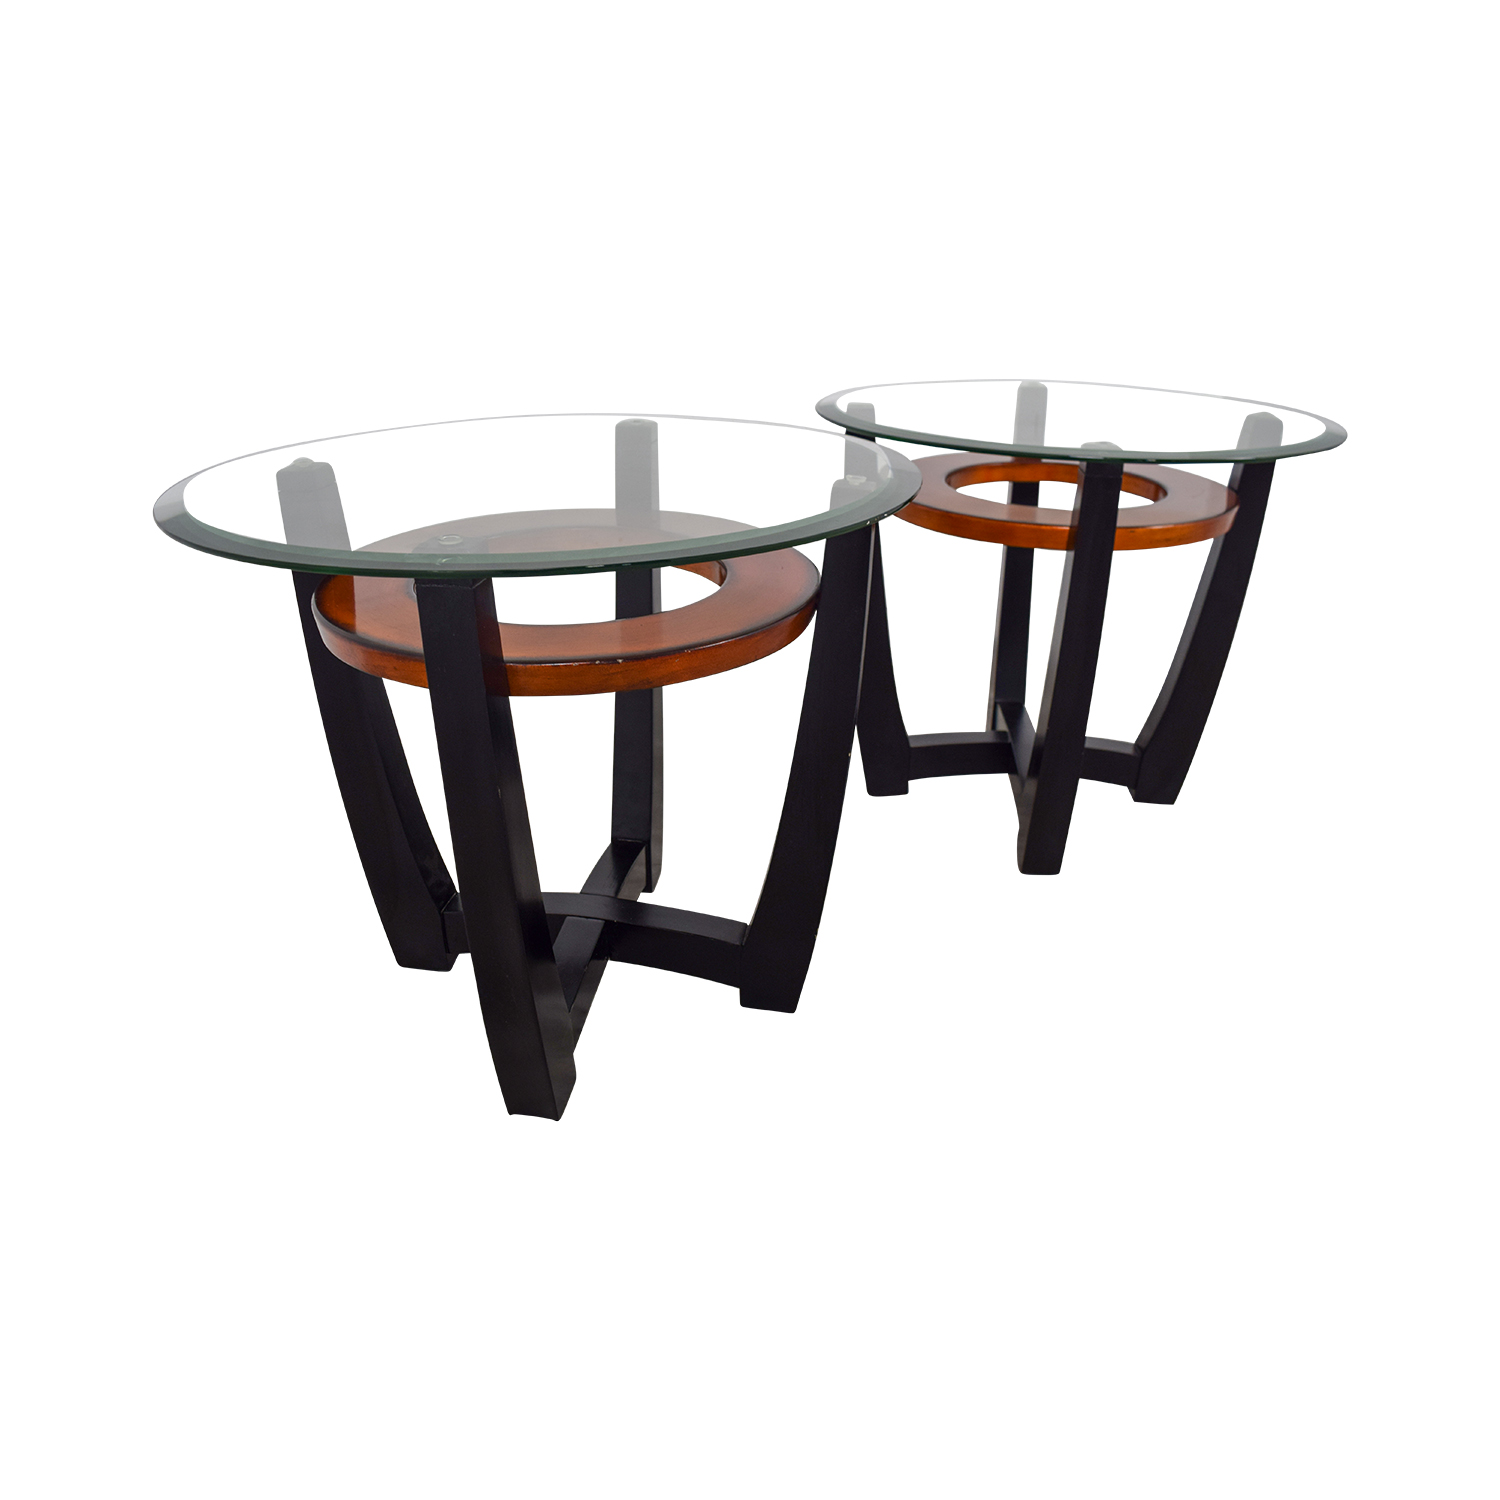 buy Elation Elation Round Glass and Wood End Tables online